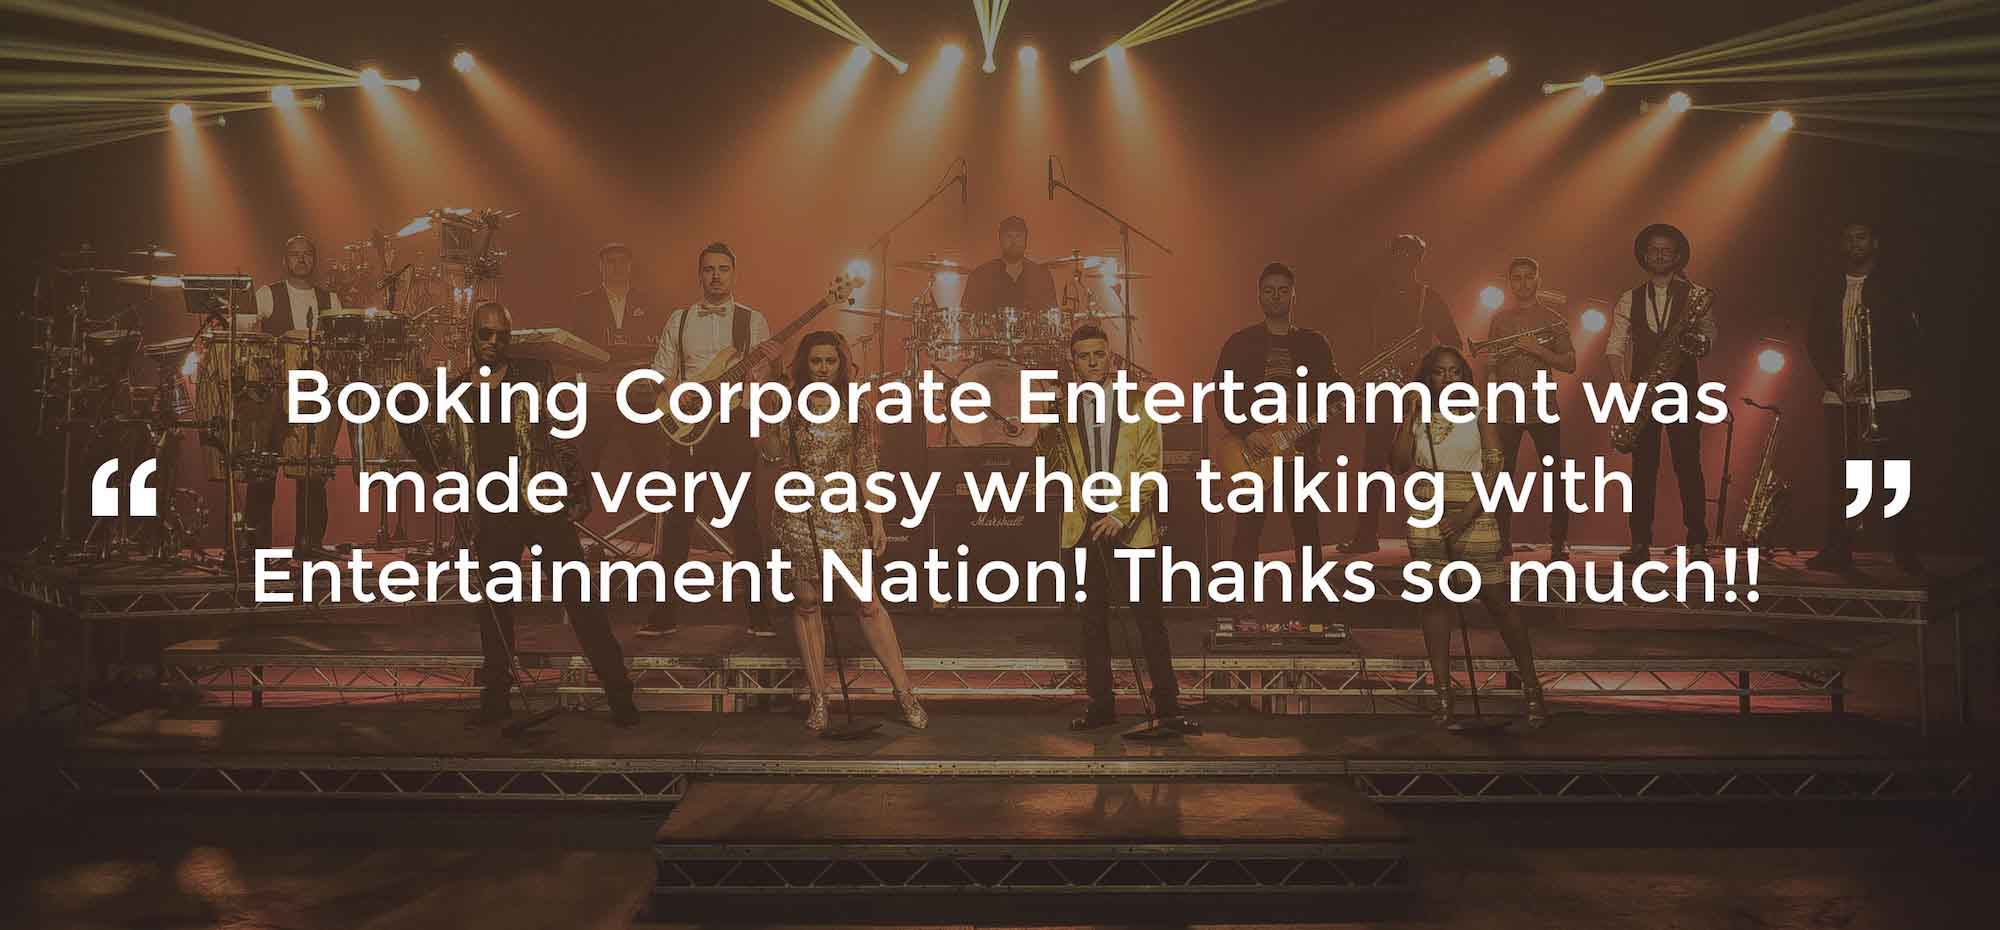 Client Review of Corporate Entertainment North Scotland